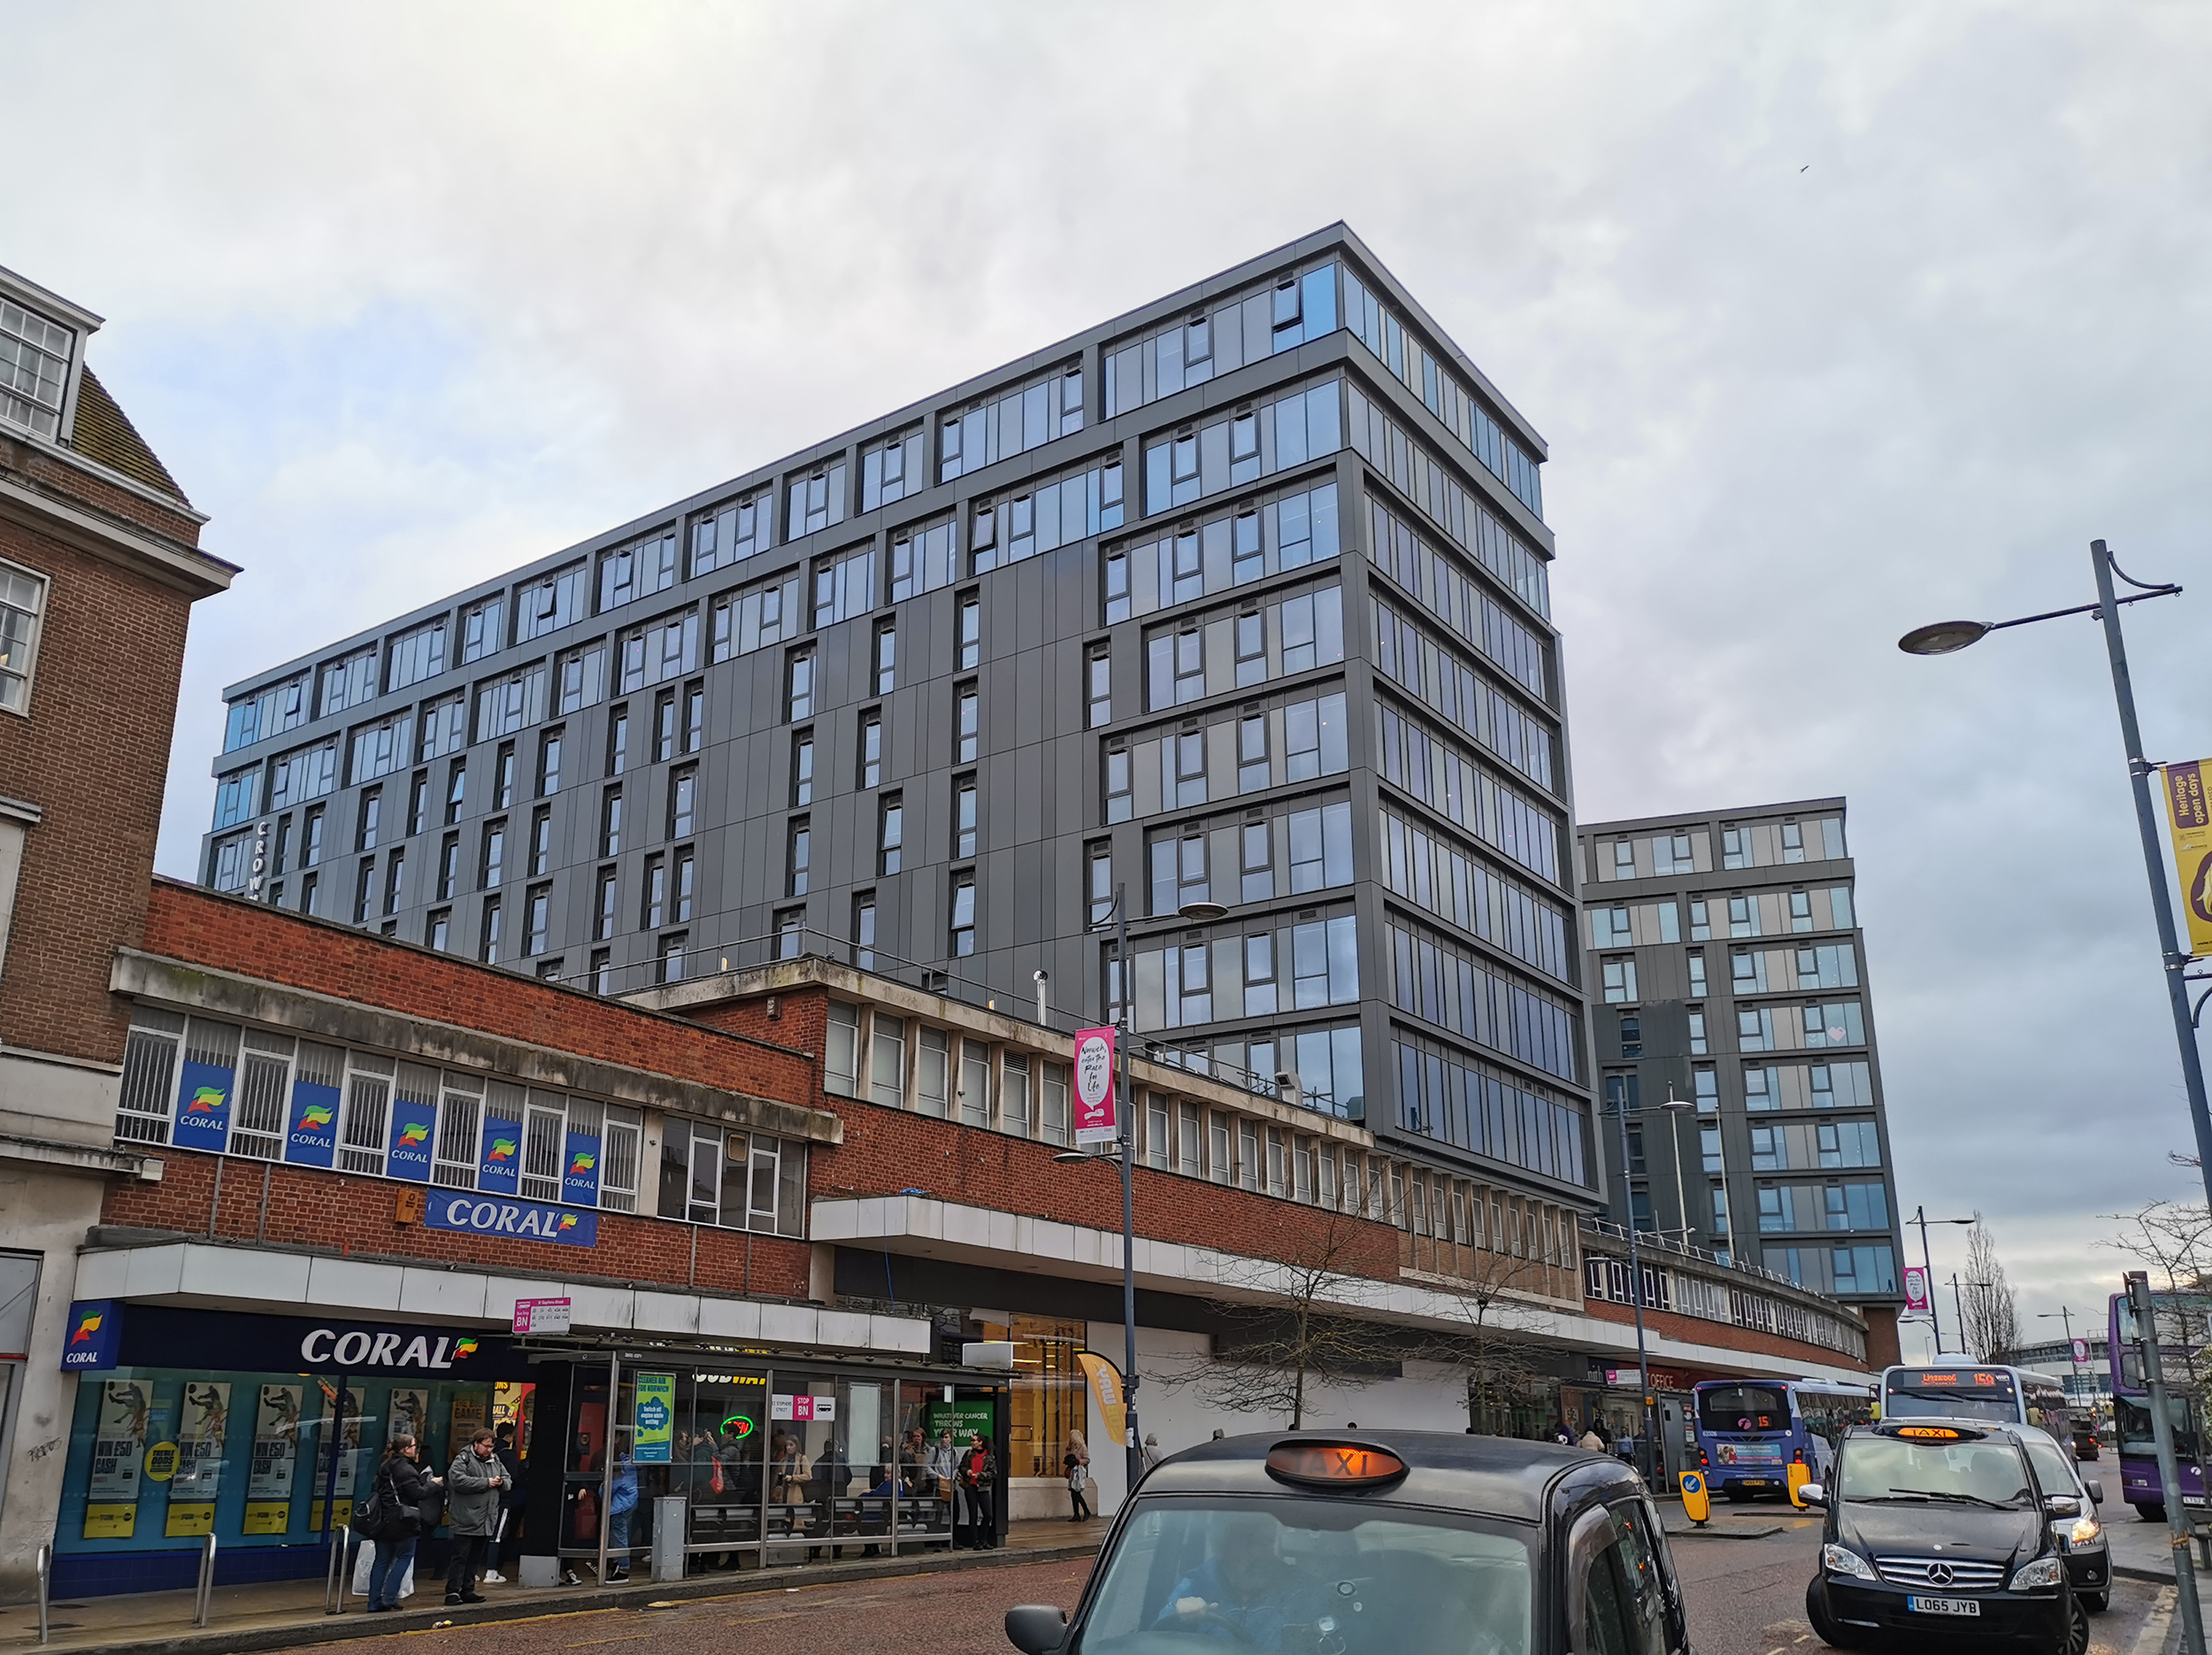 Kawneer products selected for £50 million award-winning Crown Place redevelopment